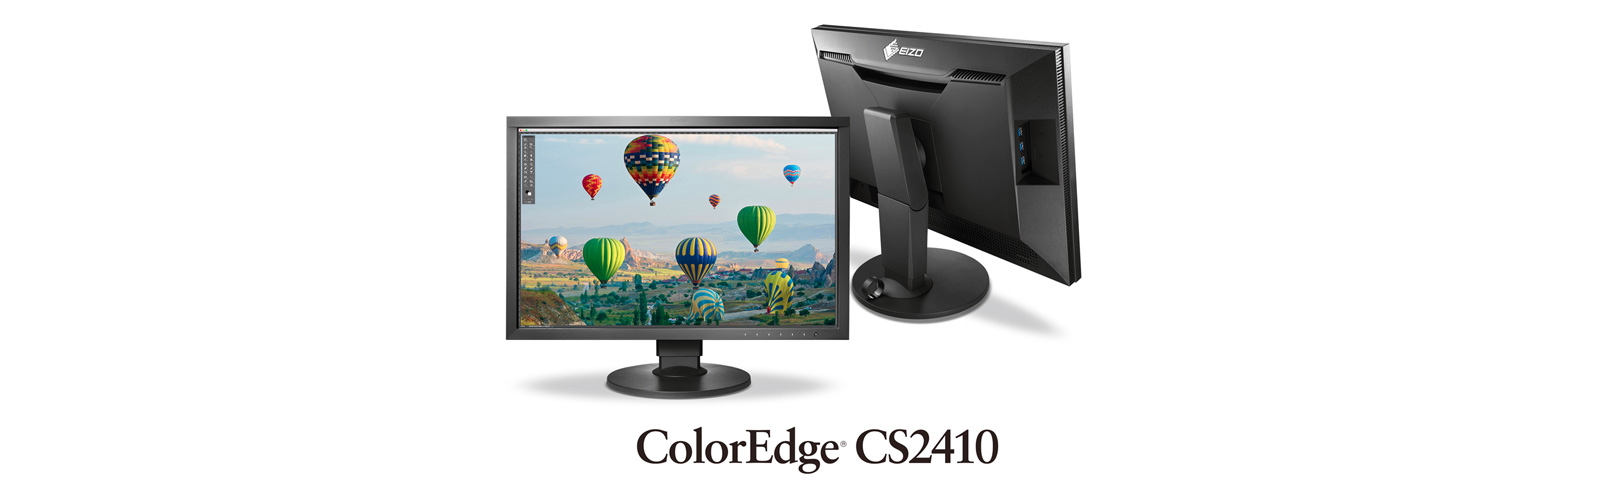 Eizo announces the ColorEdge CS2410 desktop monitor, to be launched after a month